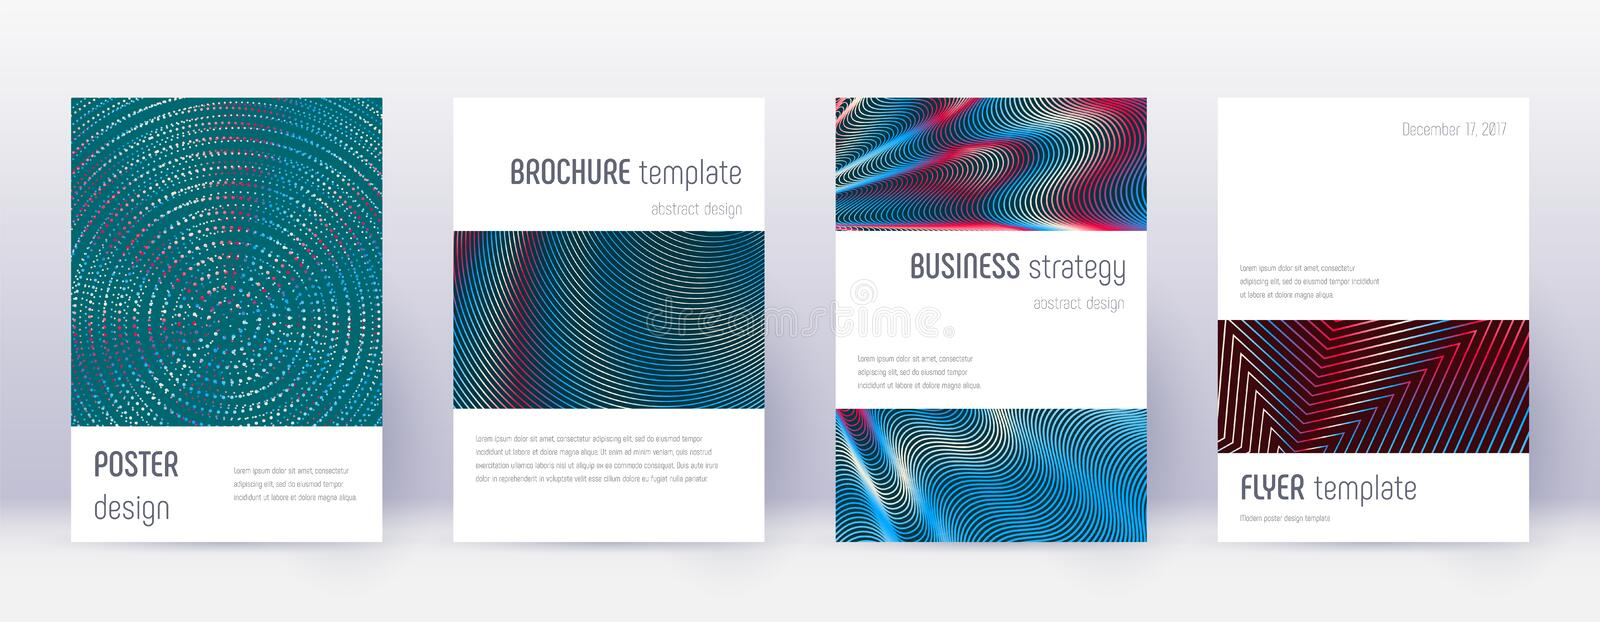 Minimalistic brochure design template set. Red abs. Tract lines on white blue background. Authentic brochure design. Magnetic catalog, poster, book template etc royalty free illustration